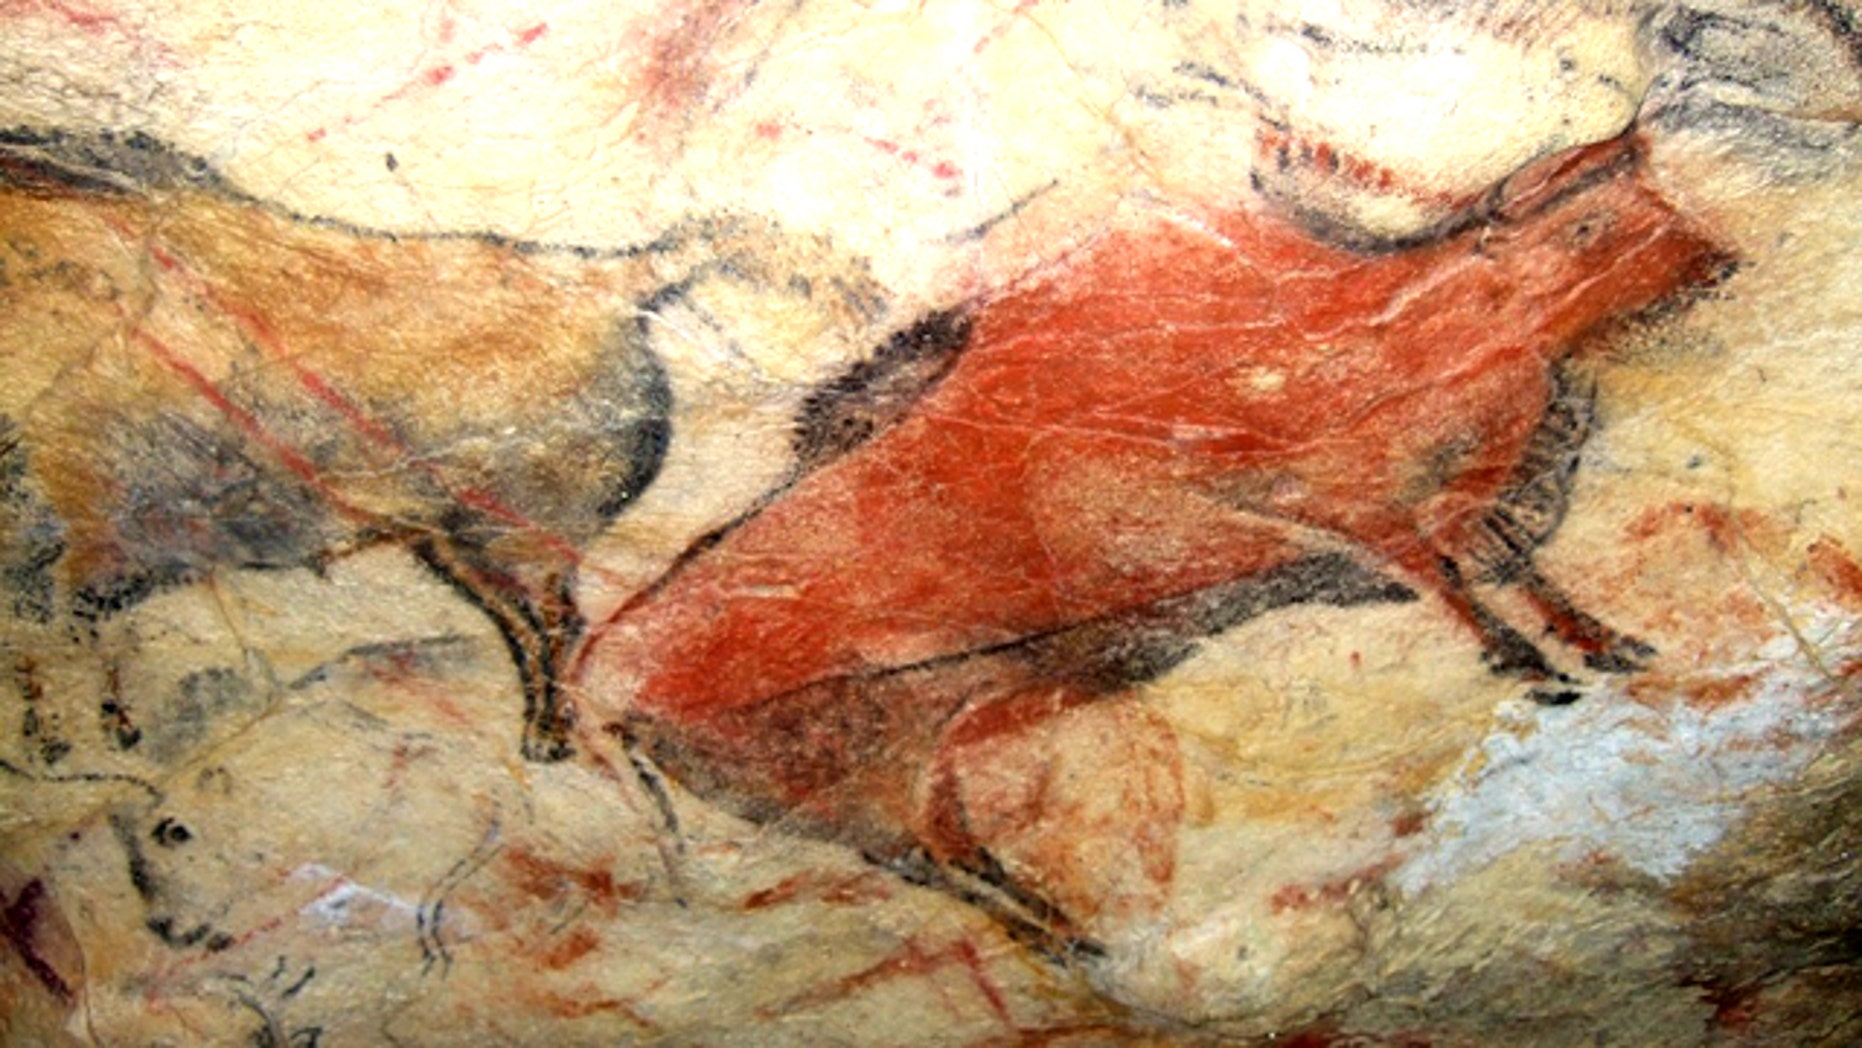 A painted bison on the ceiling of Altamira cave in Spain. The cave is closed to the public because human incursions have caused damage to the 14,000-year-old paintings.